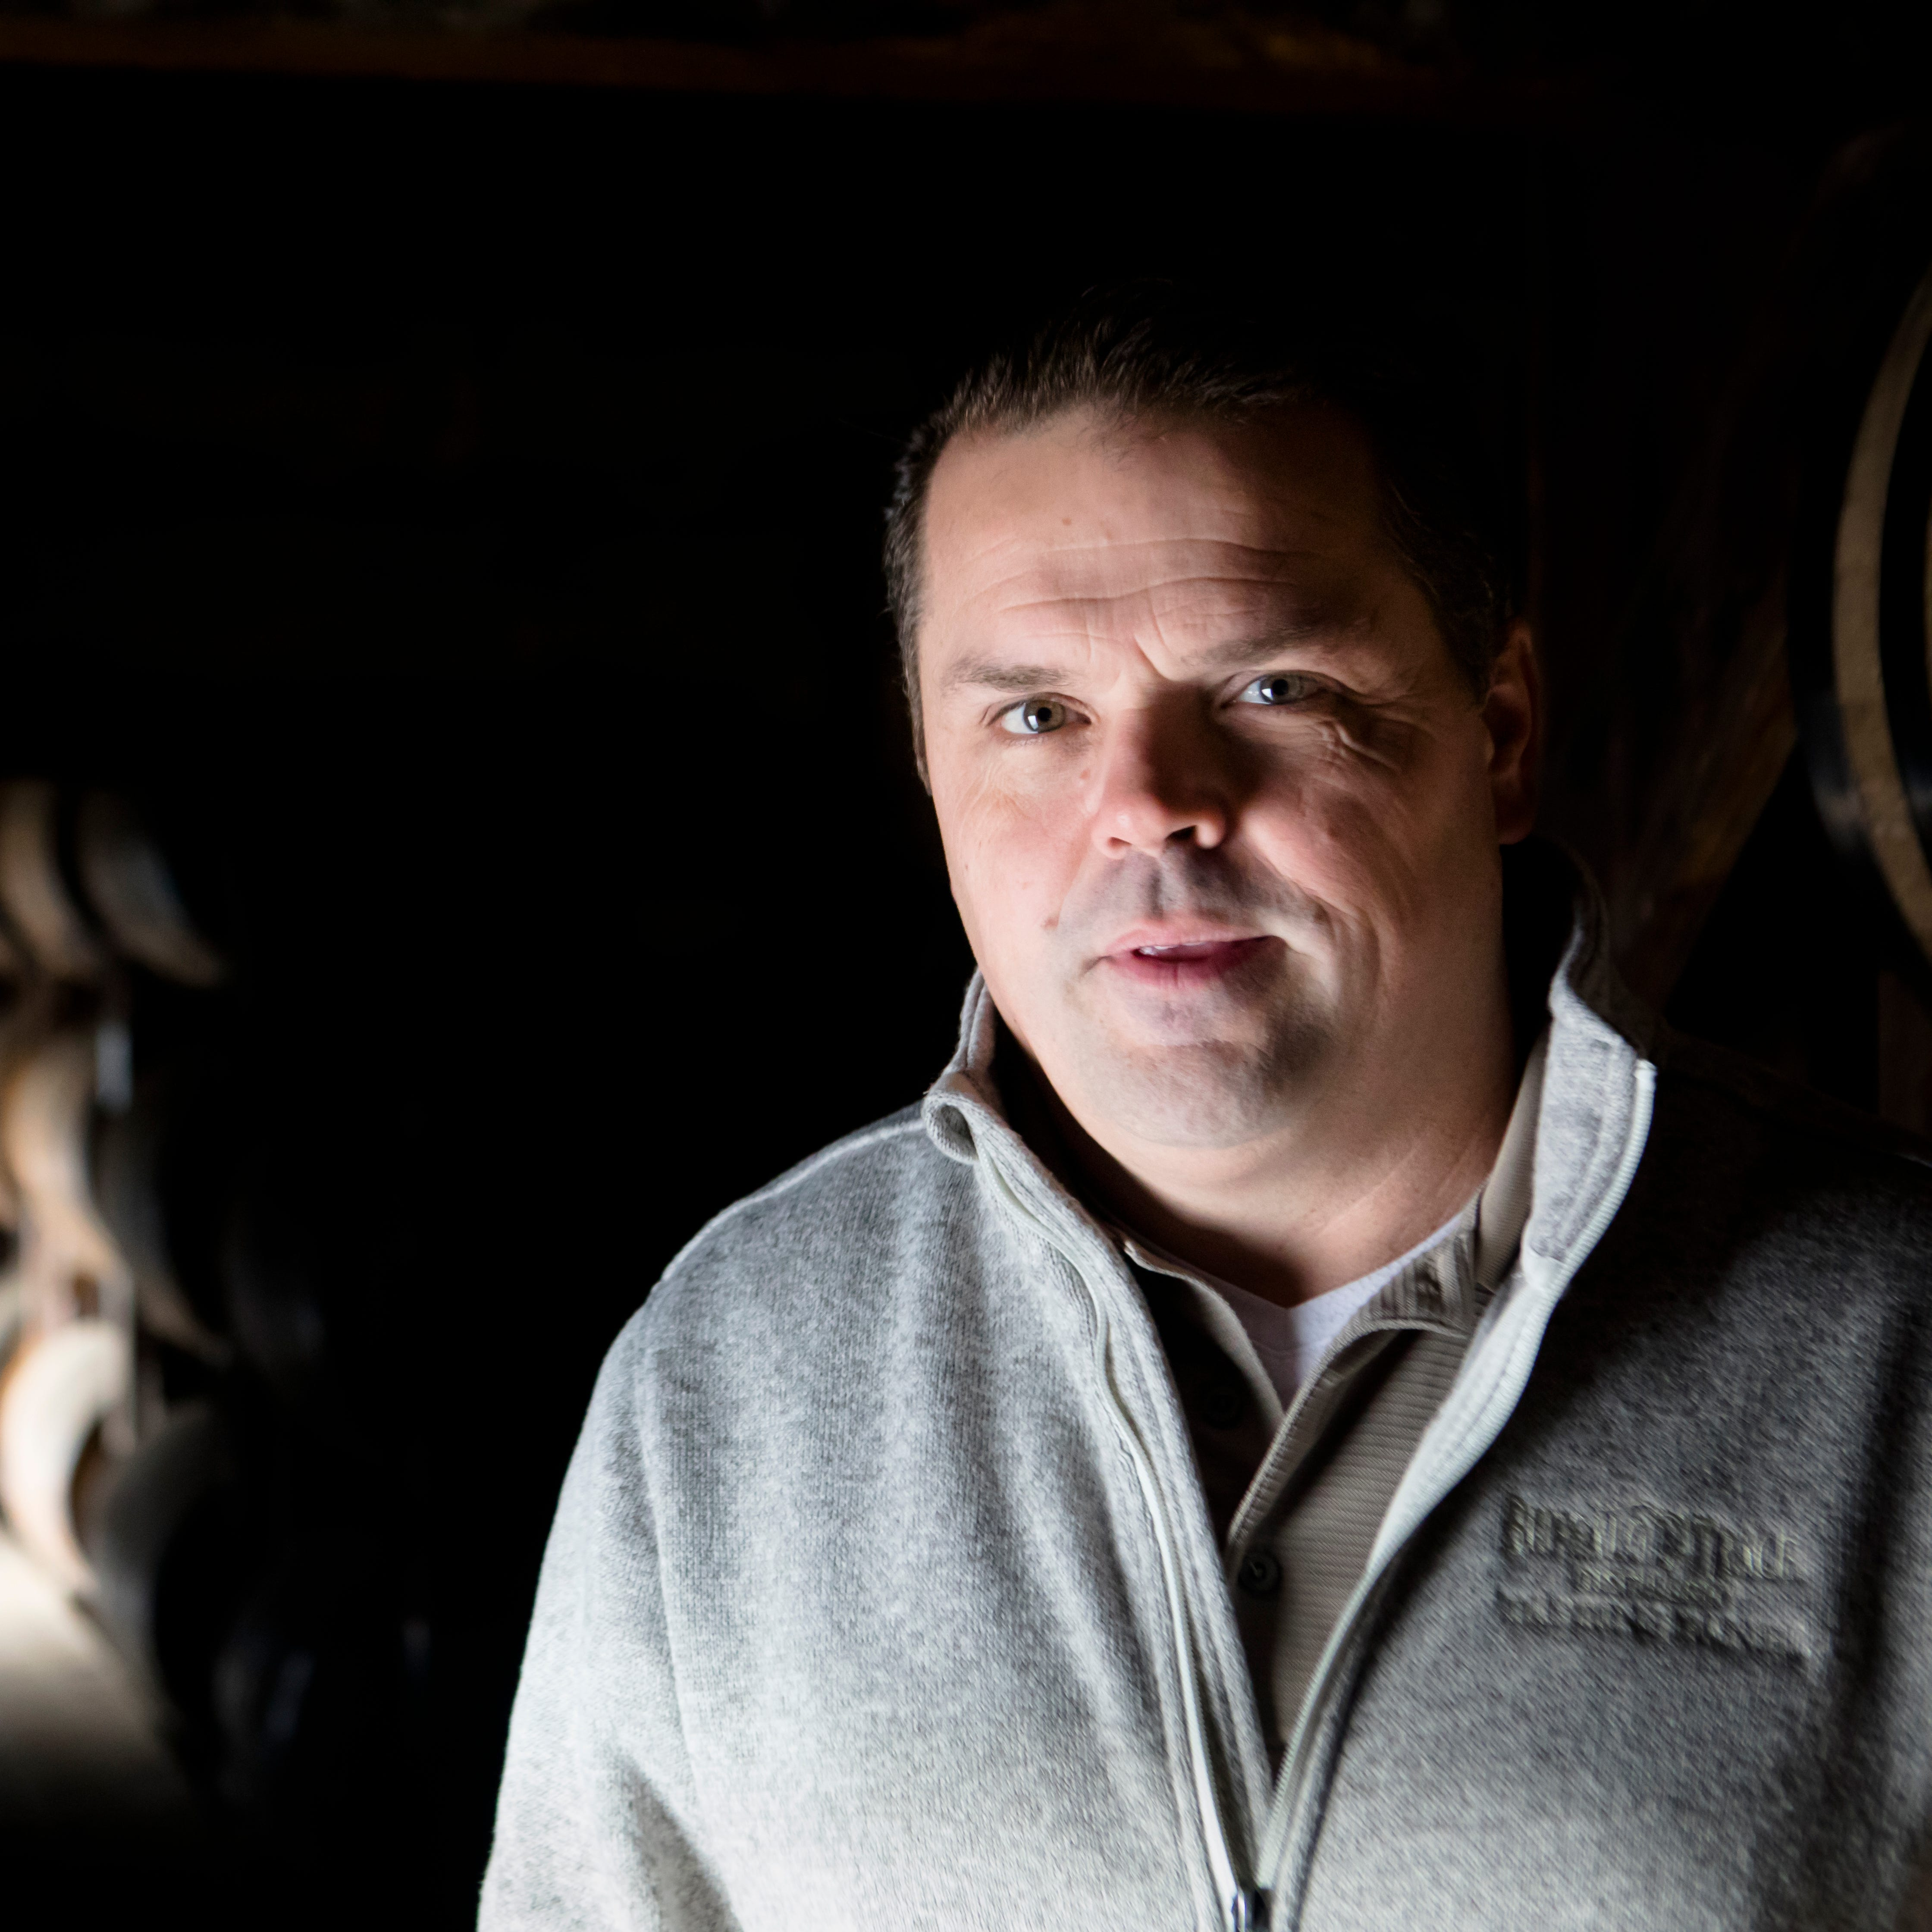 Boone County native and NKU grad leads Buffalo Trace and bourbon resurgence